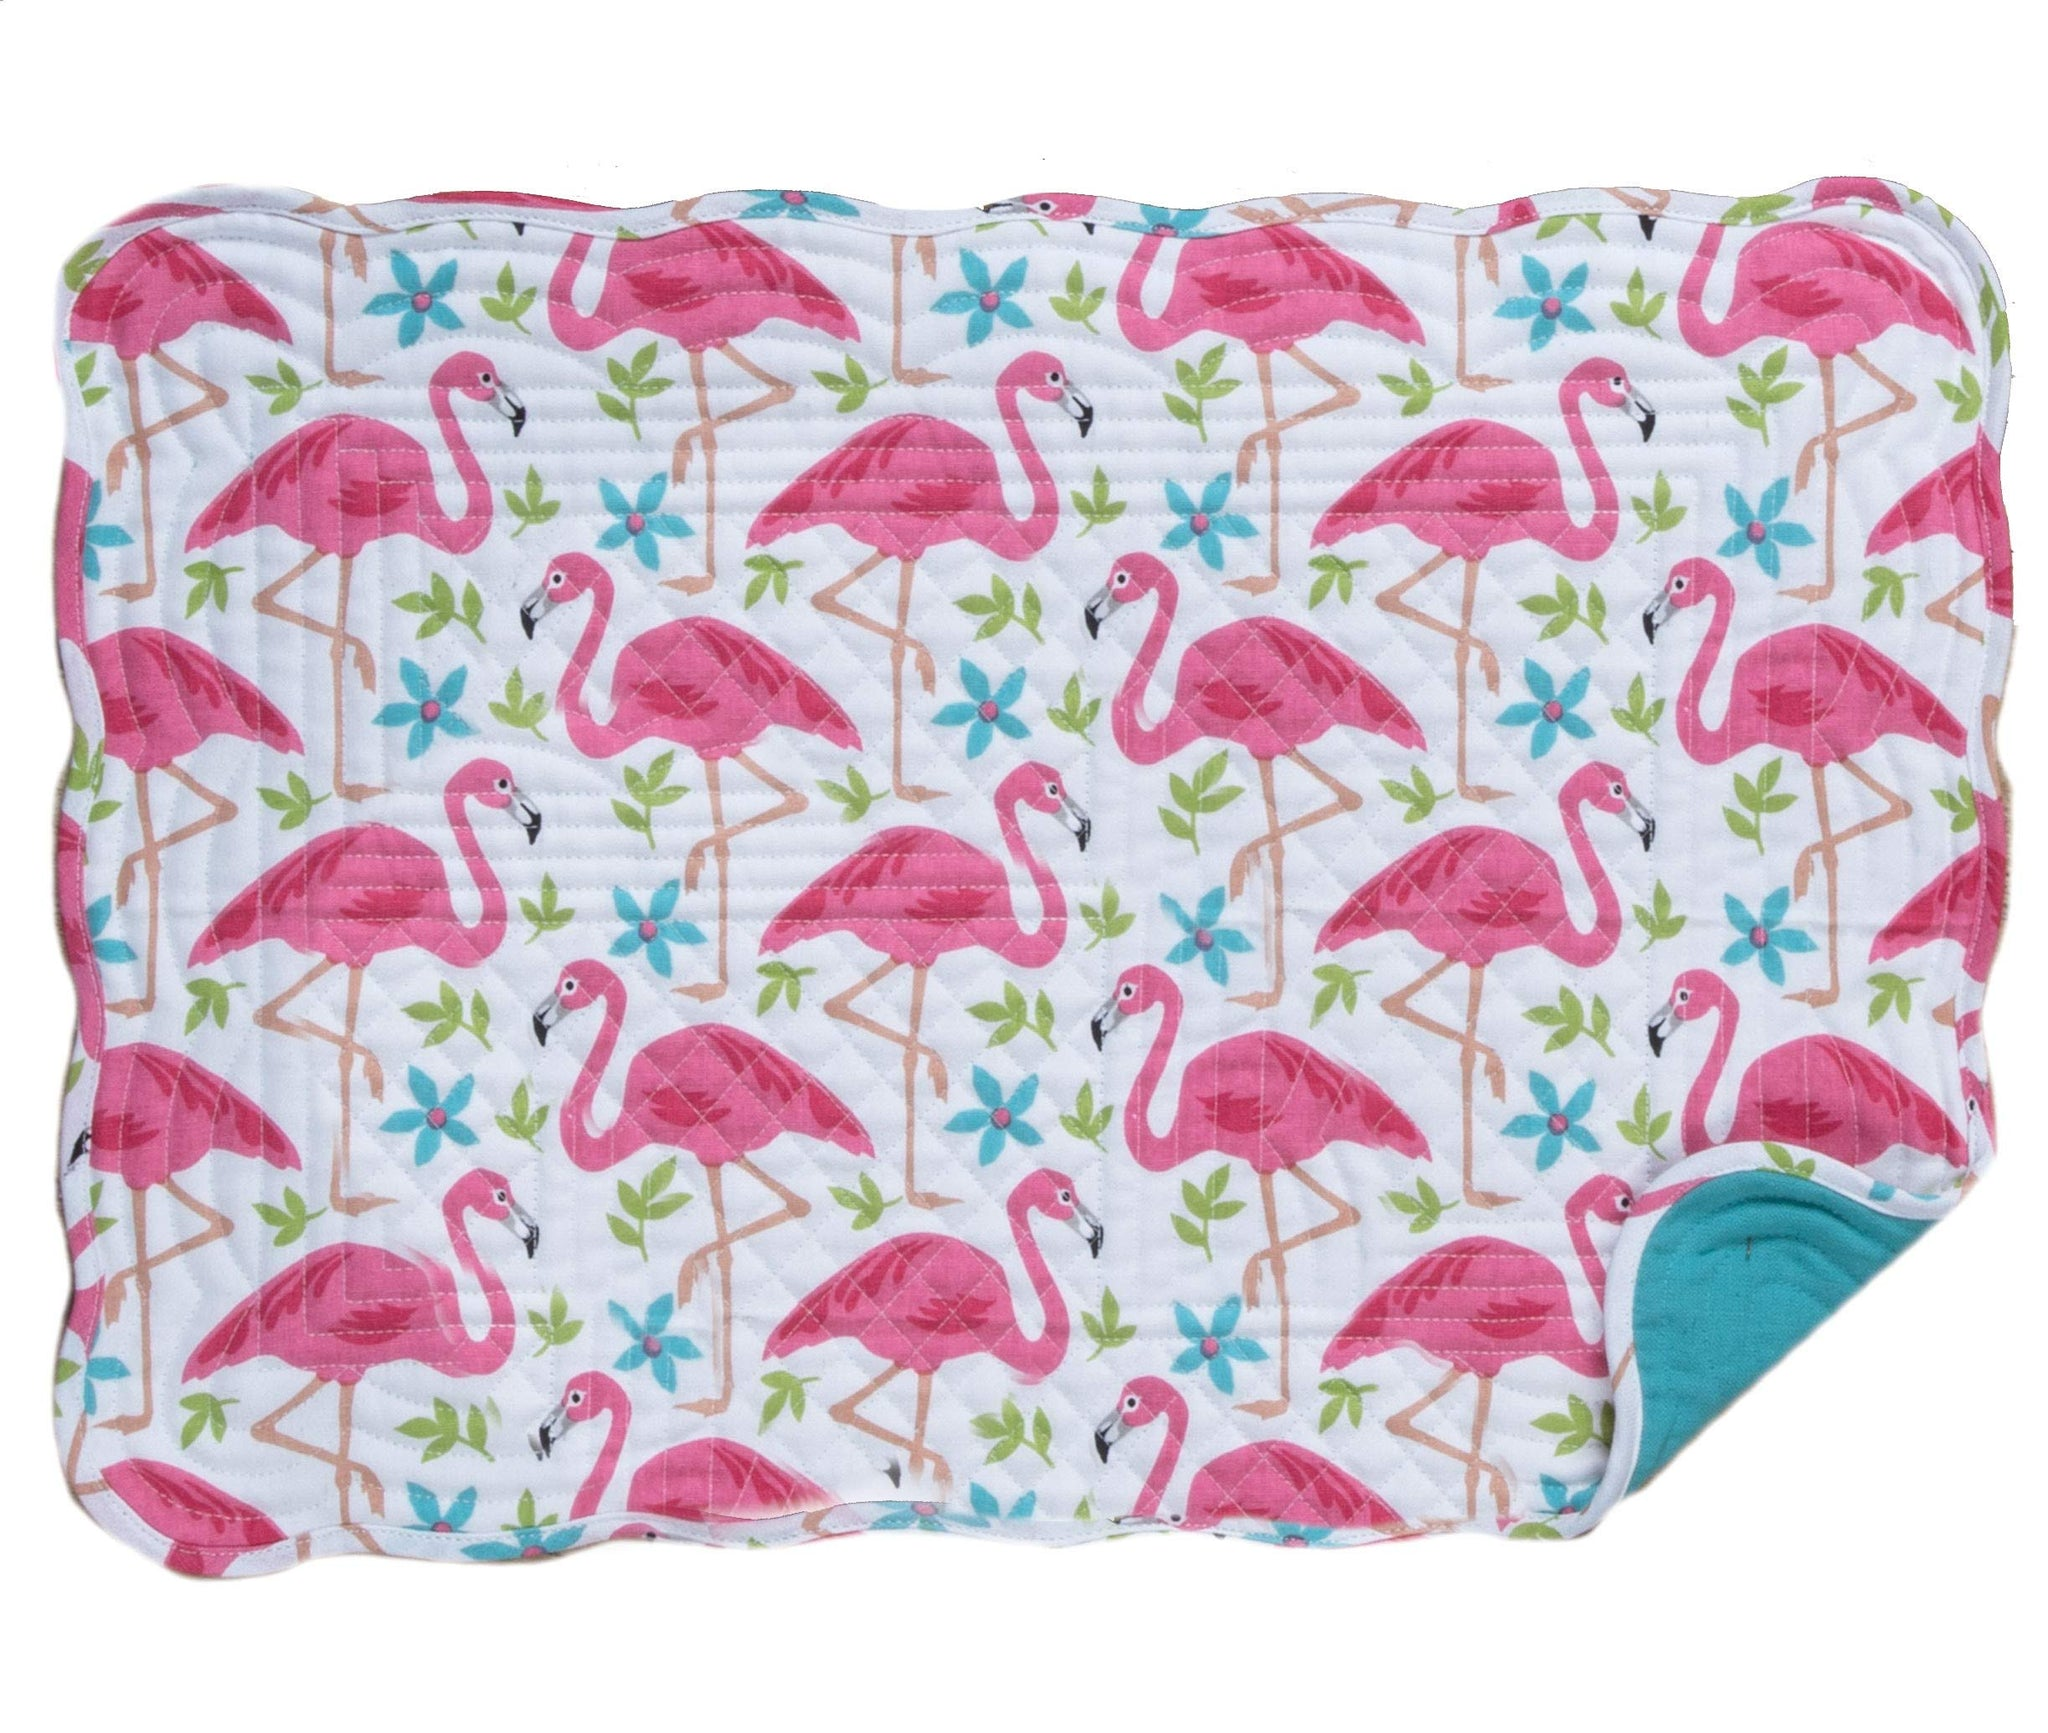 Kay Dee Designs Flamingo Quilted Placemat R4539 One Size White/Pink/Blue